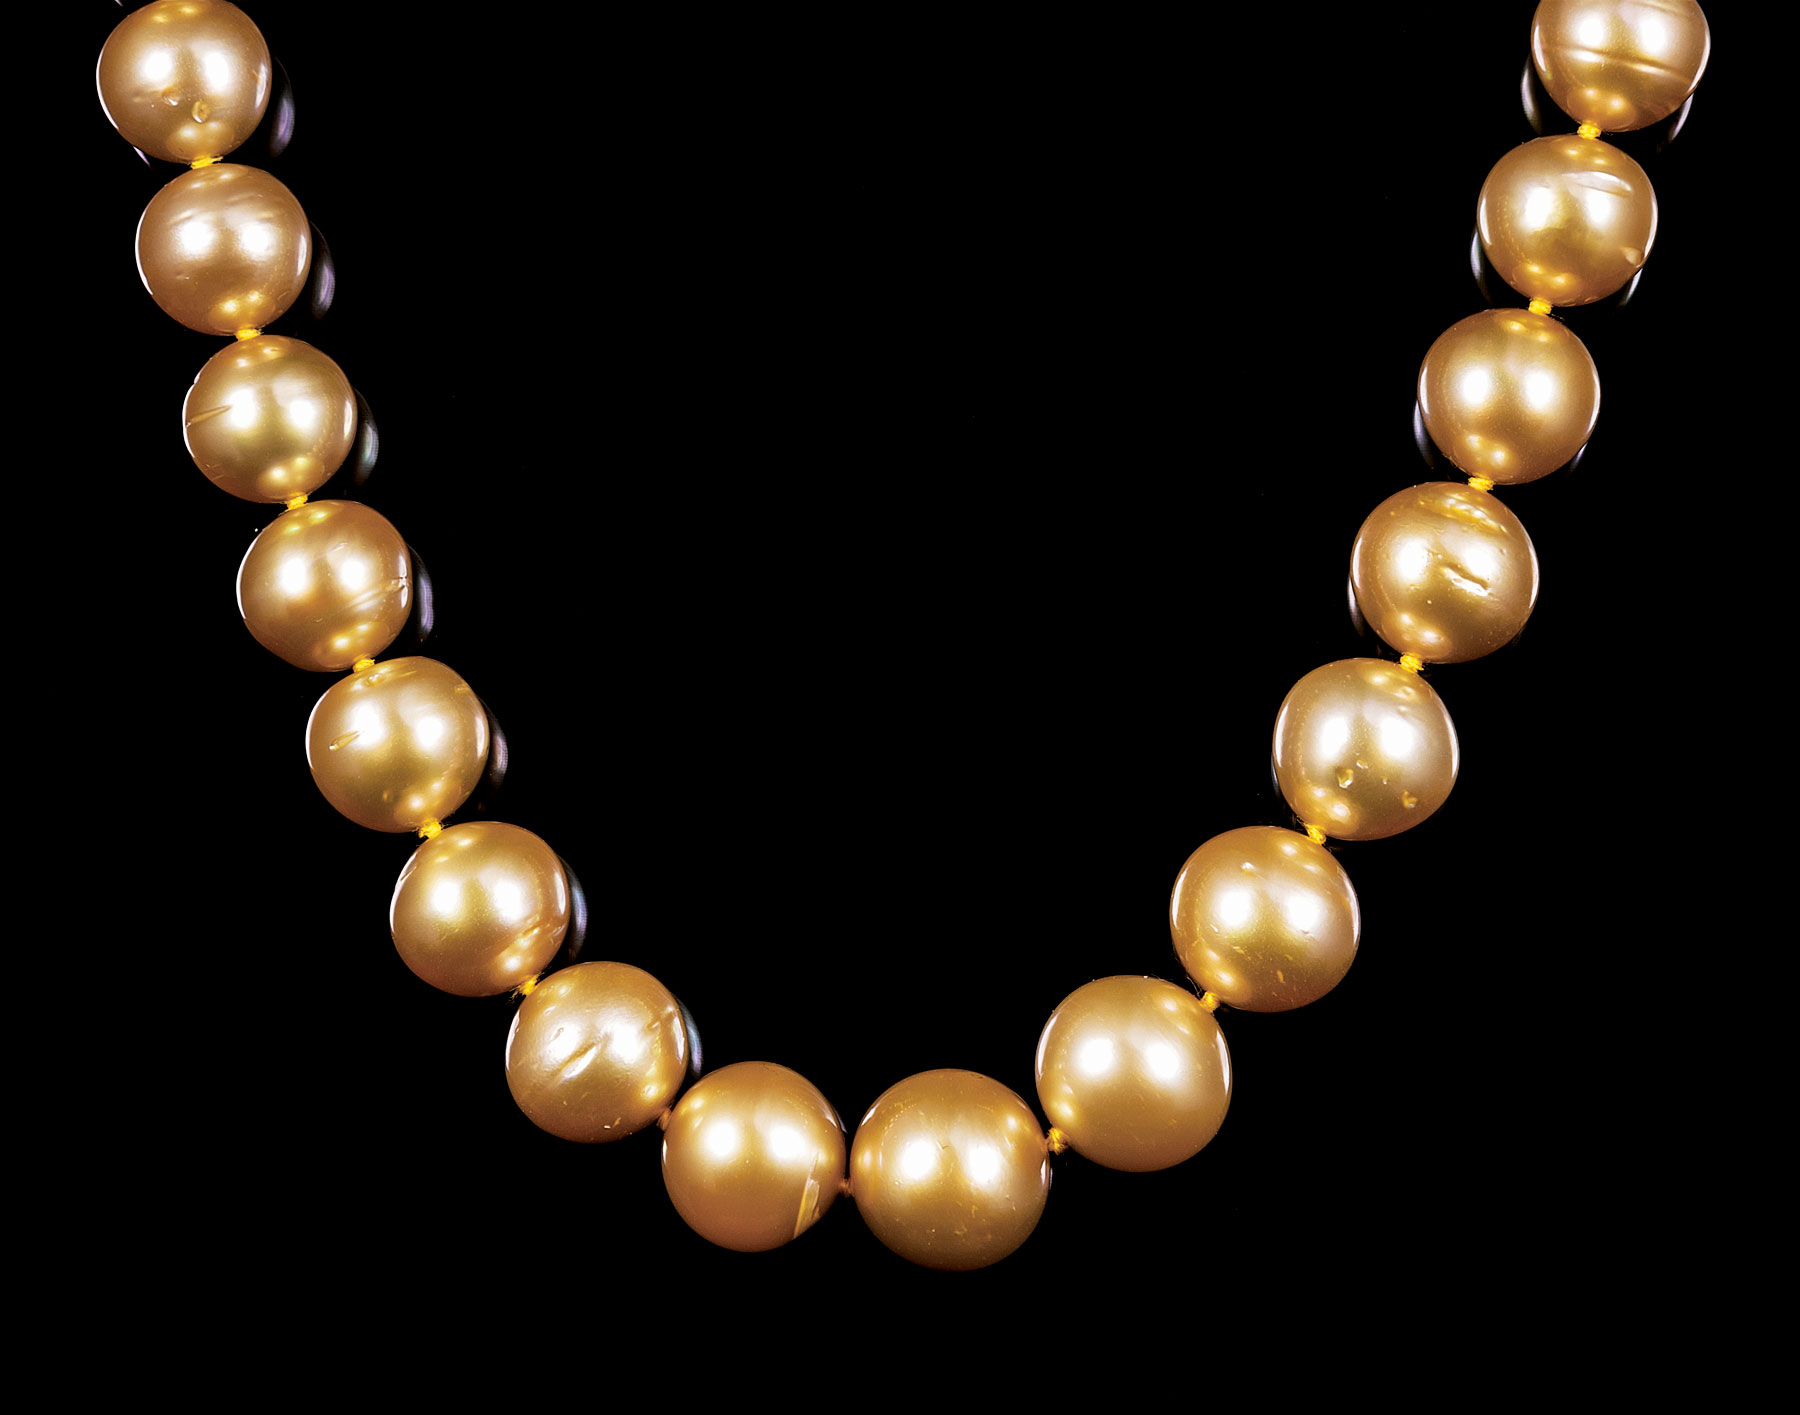 Lot 629 - 14 kt. Yellow Gold and Graduated Golden South Sea Pearl Necklace , 39 round cultured pearls, 10-13